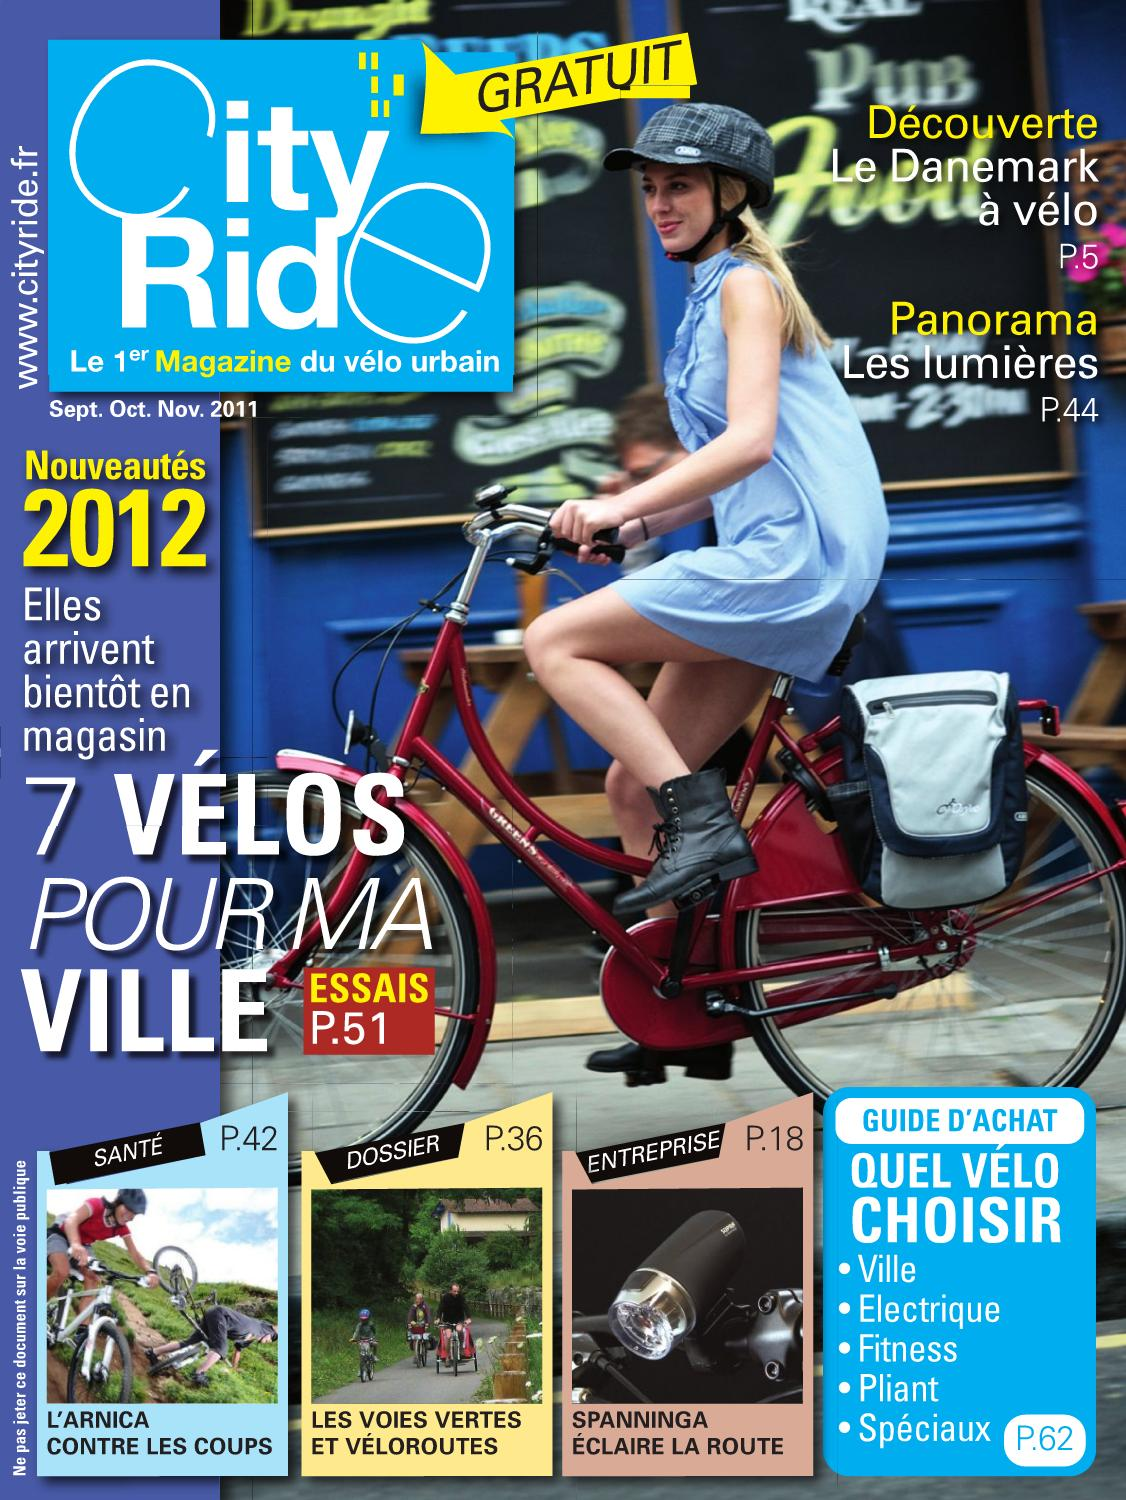 Magasin Velo Melun City Ride 13